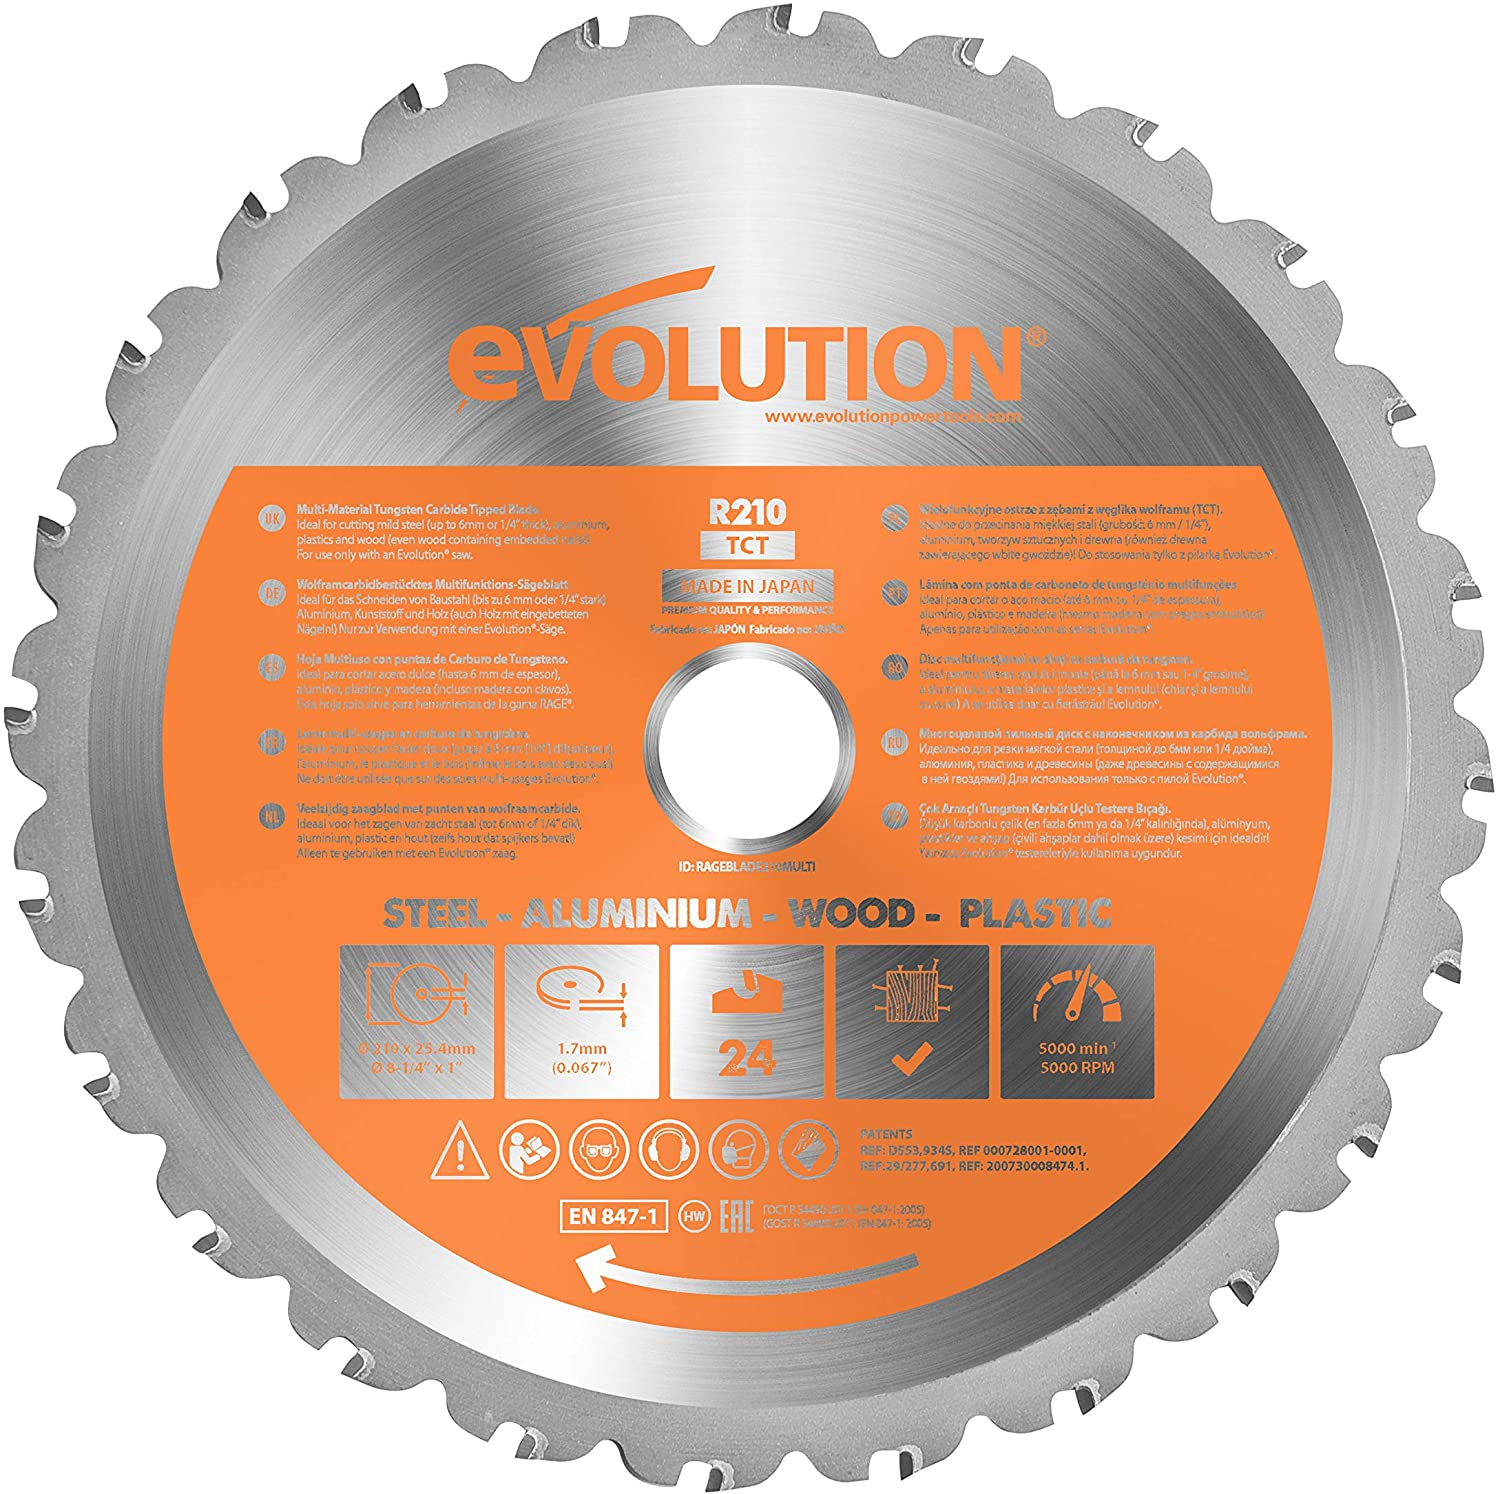 4.2 Disco Multimateriale EVOLUTION POWER TOOLS R210TCT-24T